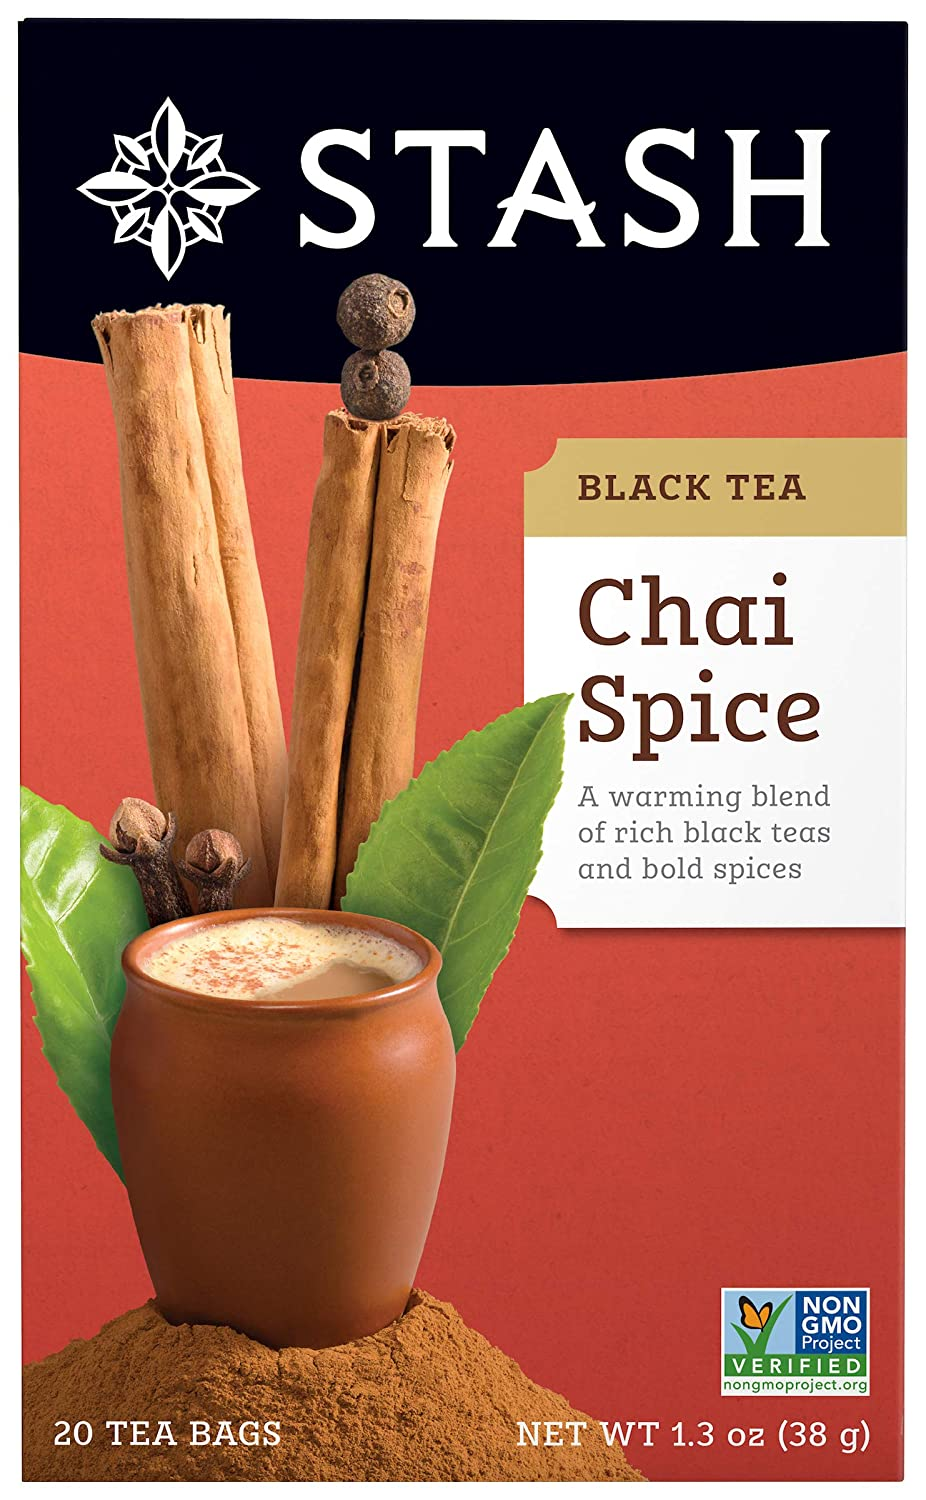 Stash Tea Chai Spice Black Tea, 20 Count Box of Tea Bags Individually Wrapped in Foil, Premium Black Tea Blended with Invigorating, Warming Spices, Drink Hot or Iced